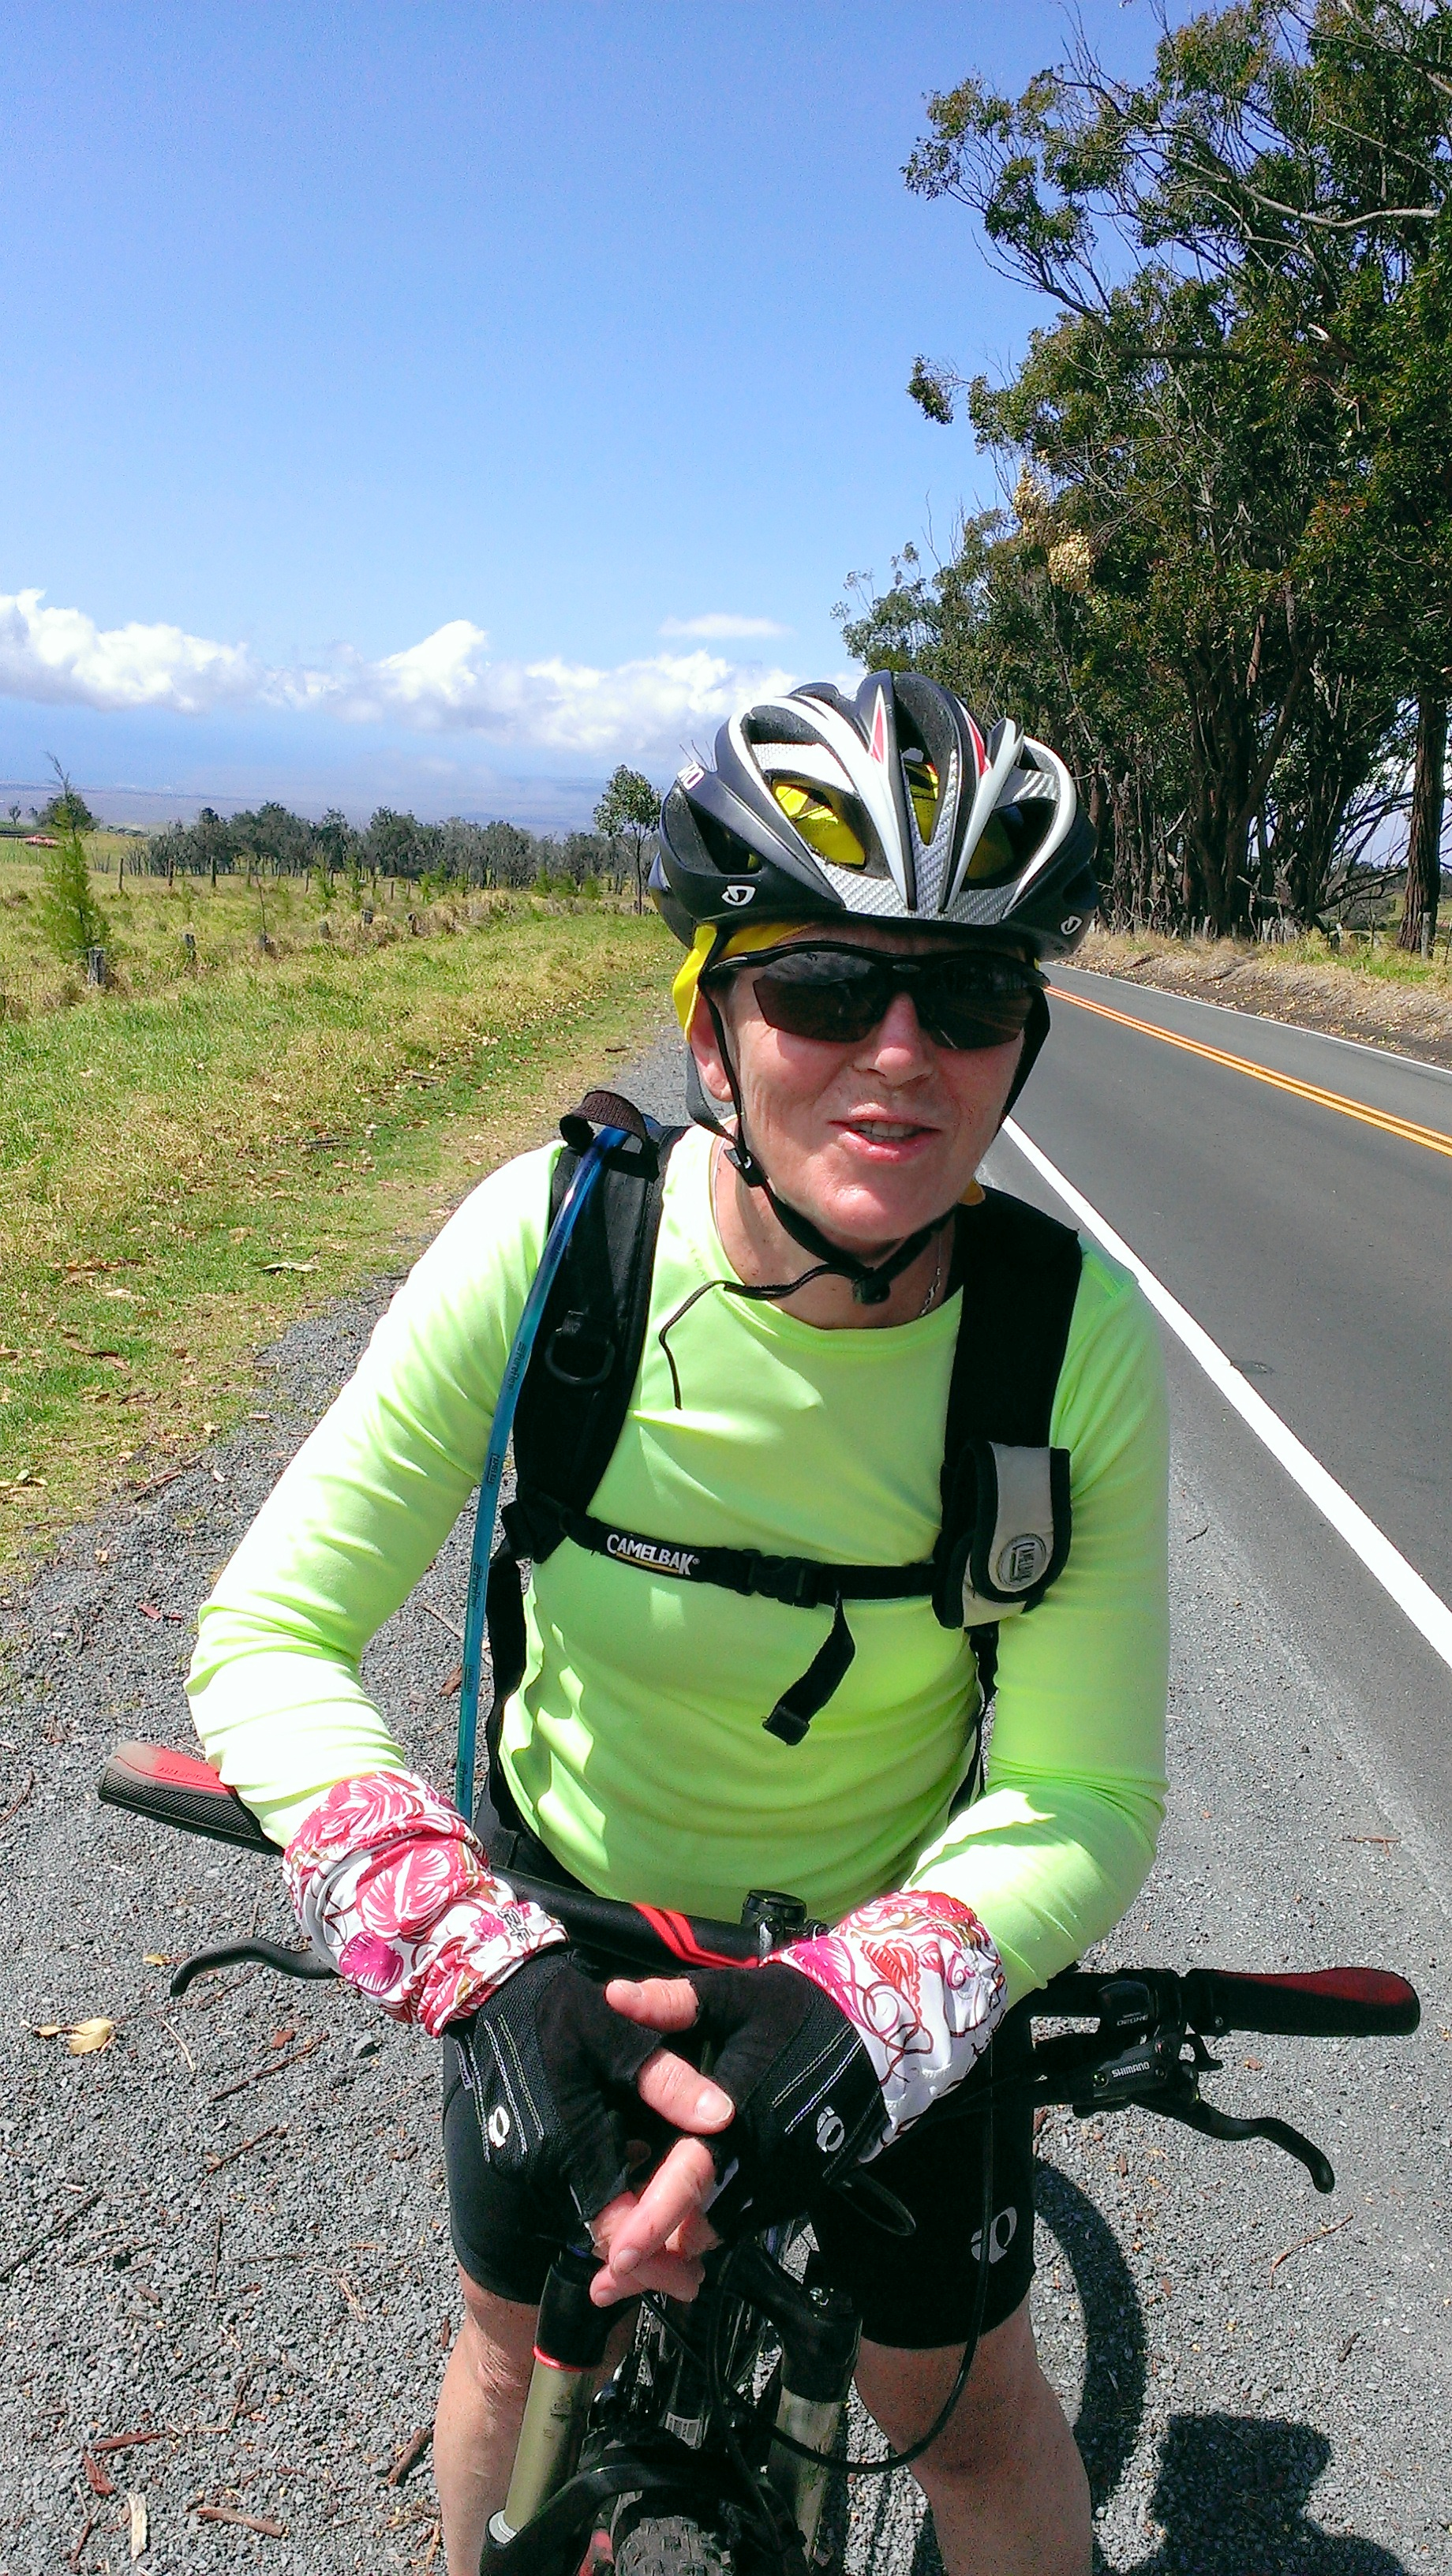 Biking up Mauna Loa on the Hawaii Big Island